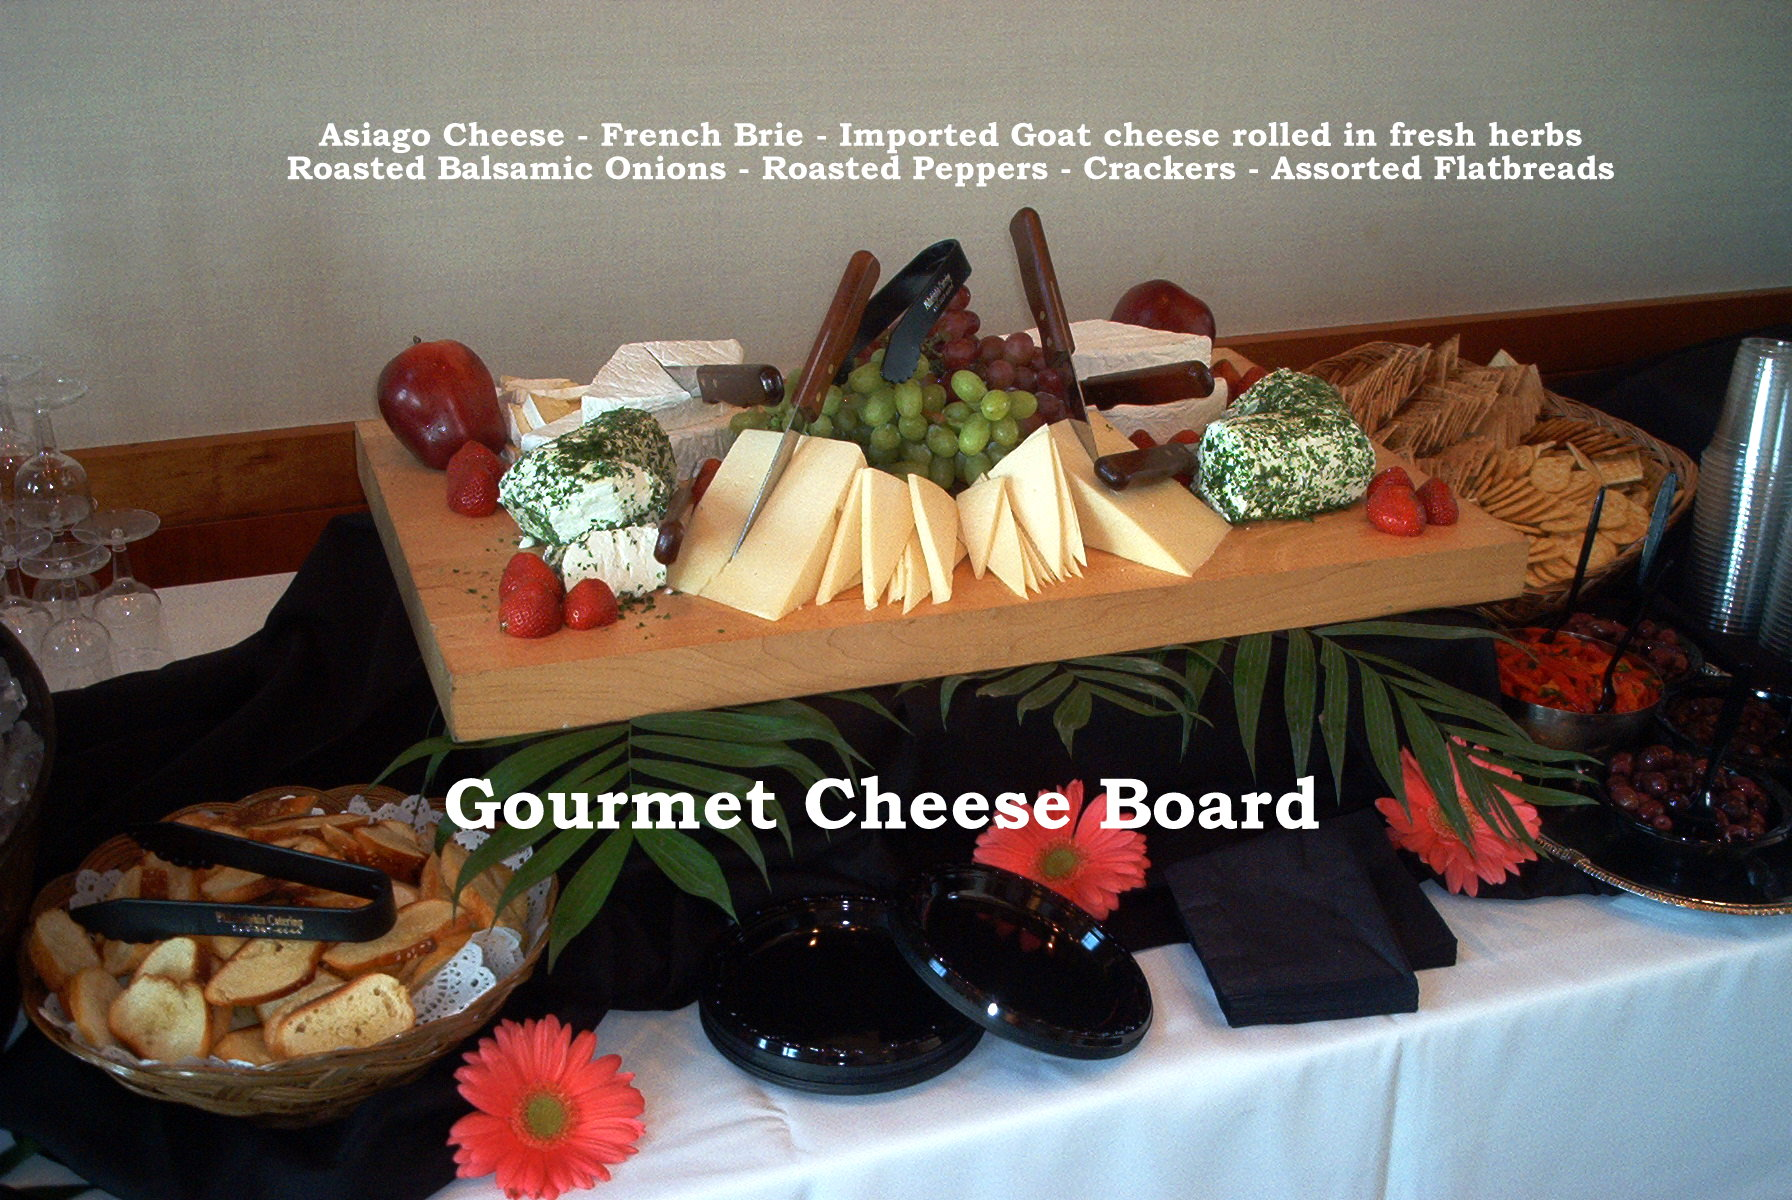 Gourmet Cheese Board.jpg